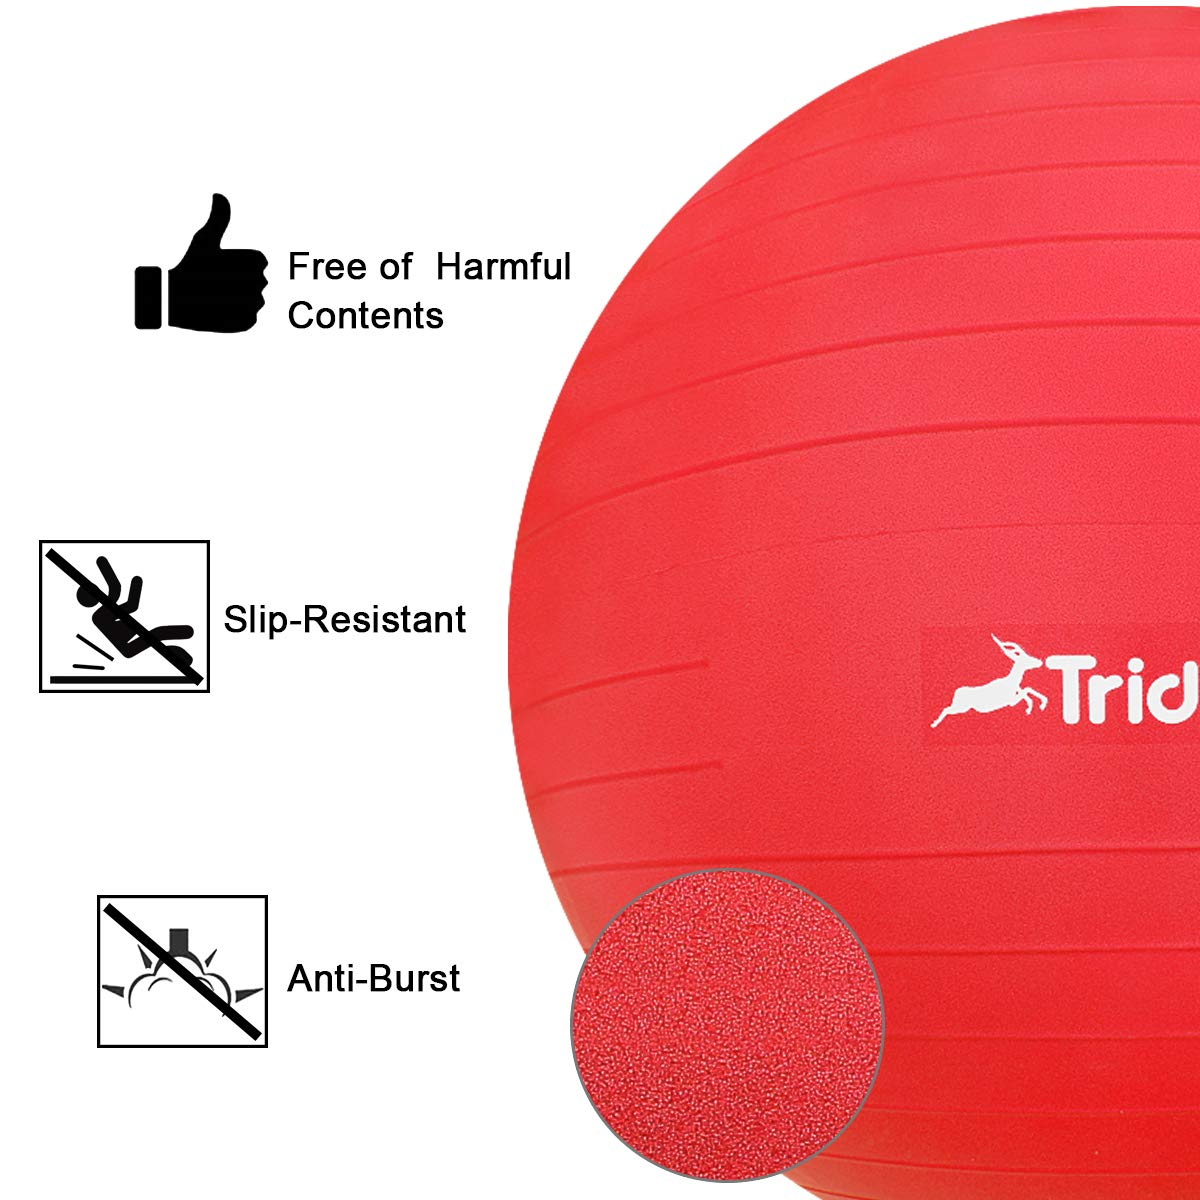 Trideer Ball Chair - Exercise Stability Yoga Ball with Base for Home and Office Desk, Ball Seat, Flexible Seating with Ring & Pump, Improves Balance, Back Pain, Core Strength & Posture by Trideer (Image #4)